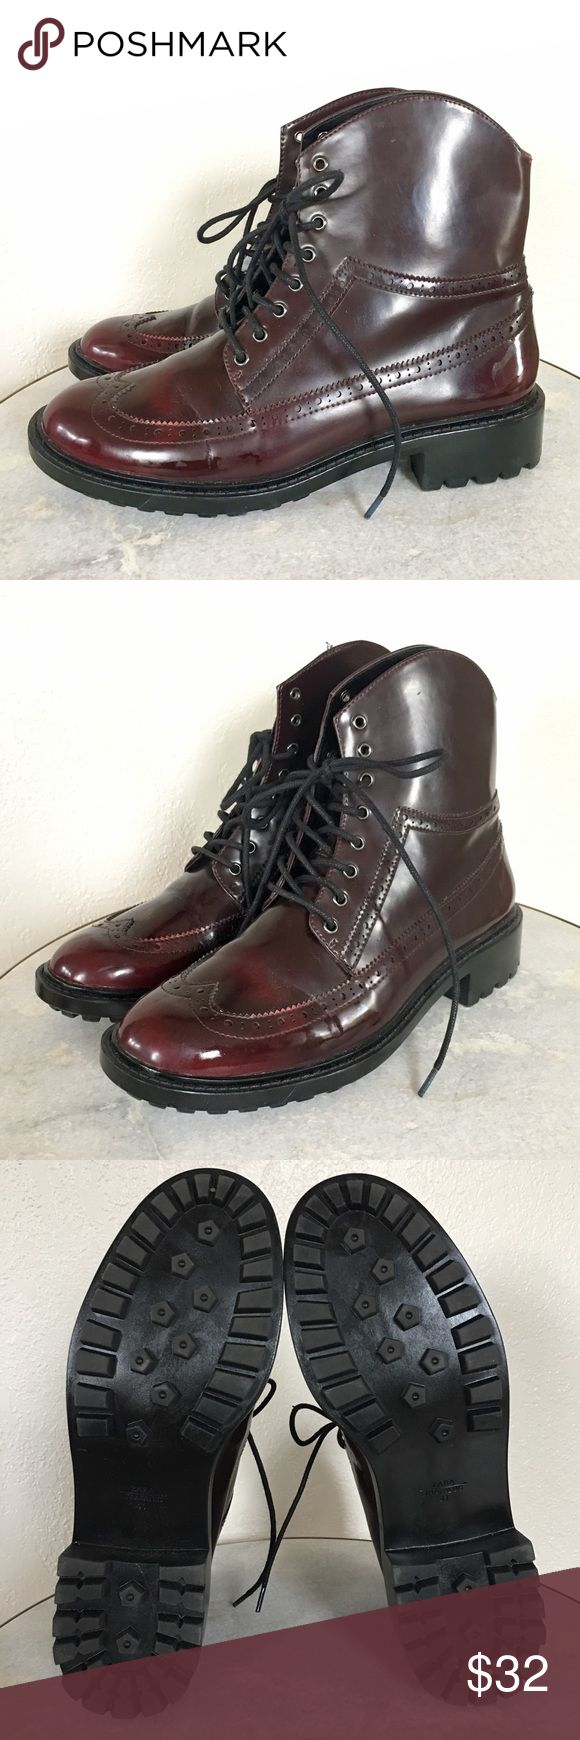 Zara Brogue Combat Boots These burgundy boots combine the masculine style of brogues and combat boots in a patent burgundy leather with a soft ankle high cut. Near perfect condition - have been worn once! Great for rain or snow. Runs very small - fits more like a 9 or 9.5. Zara Shoes Combat & Moto Boots